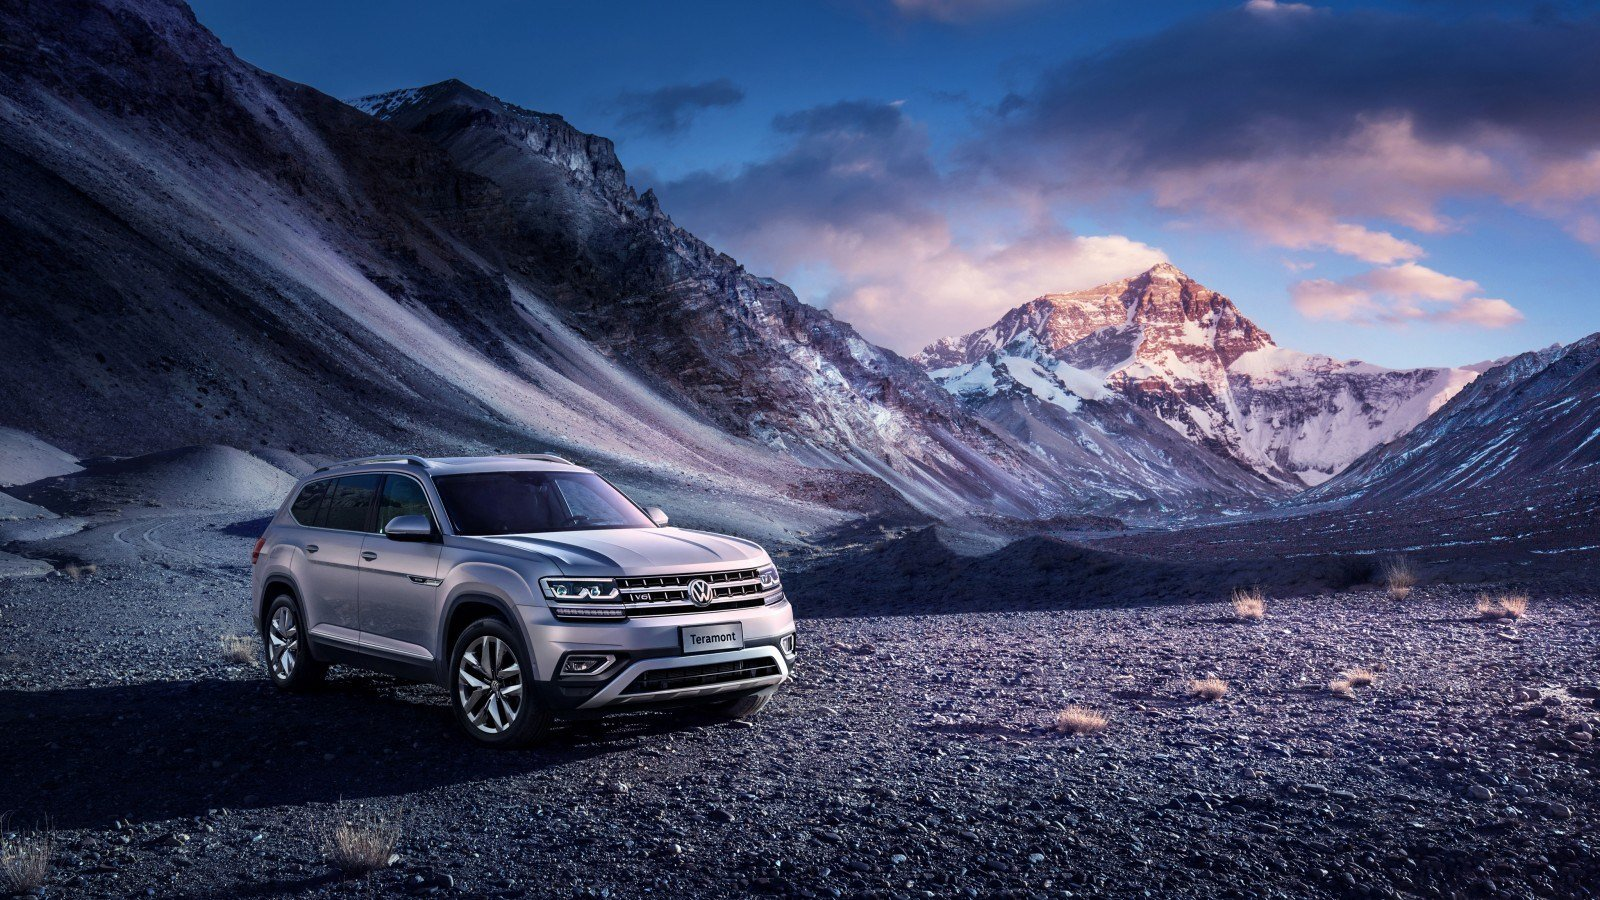 New 2019 Volkswagen Teramont 4K Wallpaper Hd Car Wallpapers On This Month